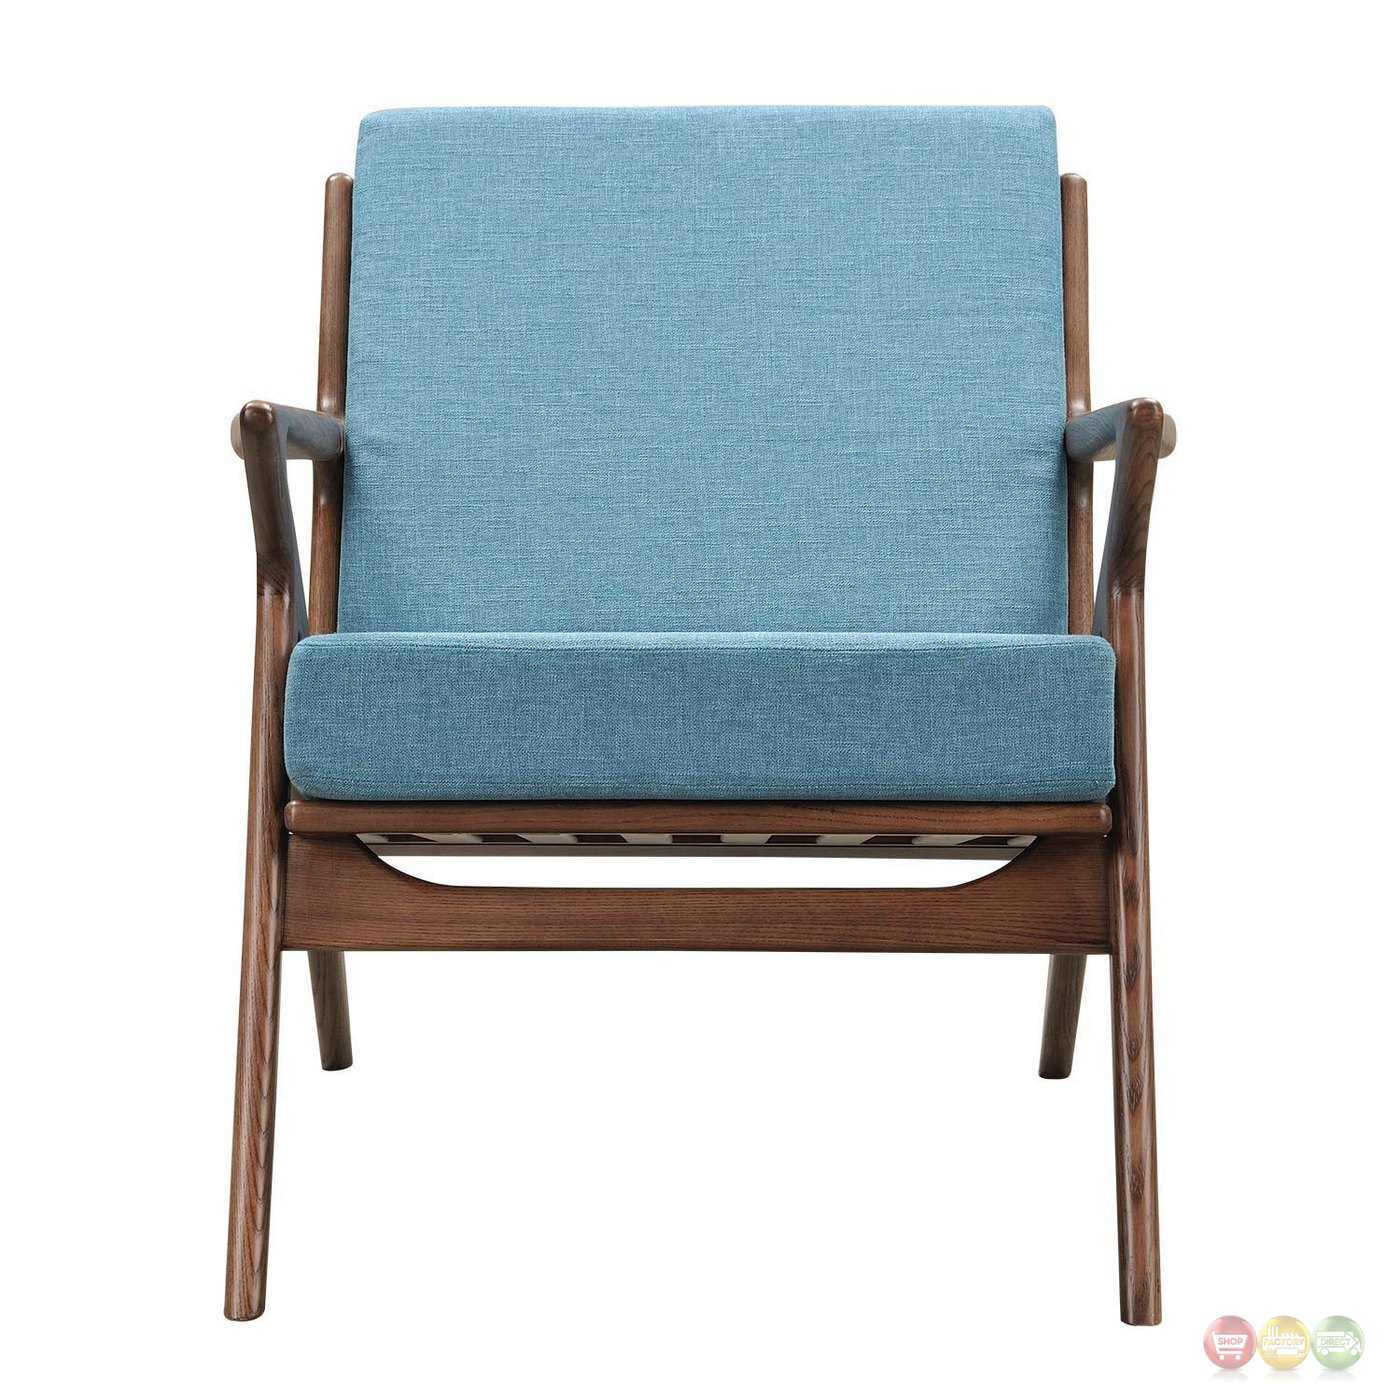 modern blue chair plastic seat covers for chairs zain mid century fabric with wooden